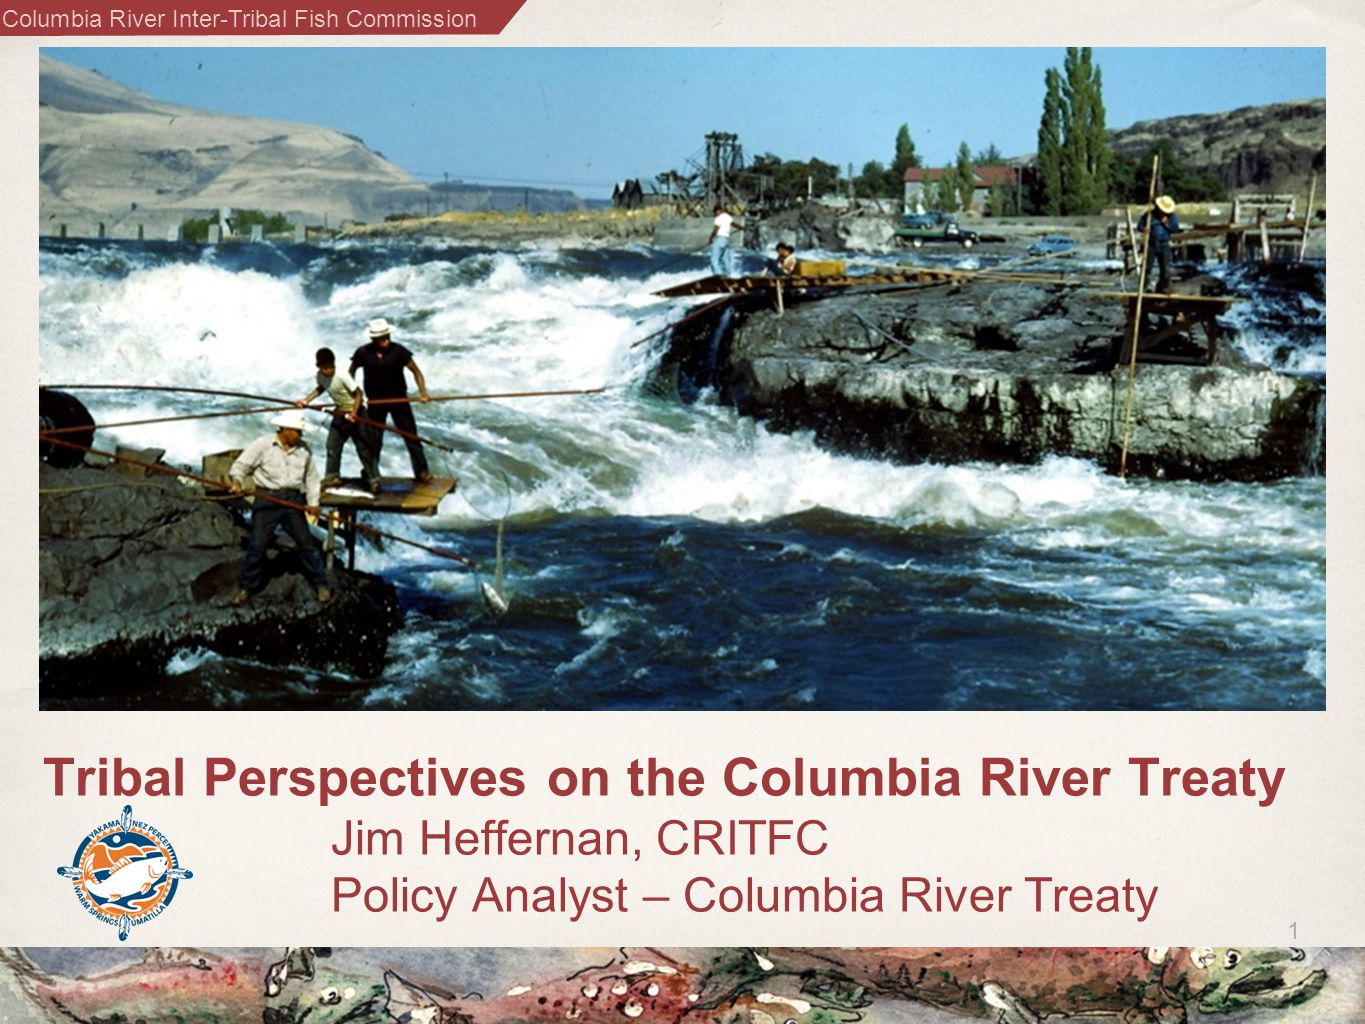 Columbia River Inter-Tribal Fish Commission 2020 Tribal Concerns Moving Forward  Schedule leading to September 2014 should not result in lack of a completed ecosystem analysis  Climate change analysis is needed for improved weather and runoff forecasting on both sides of the border  USACE is reluctant to analyze scenarios that increase flows that may result in flood risks  Tribes lack resources to fully participate and contribute their expertise  Coordination with Canada and First Nations could be increased